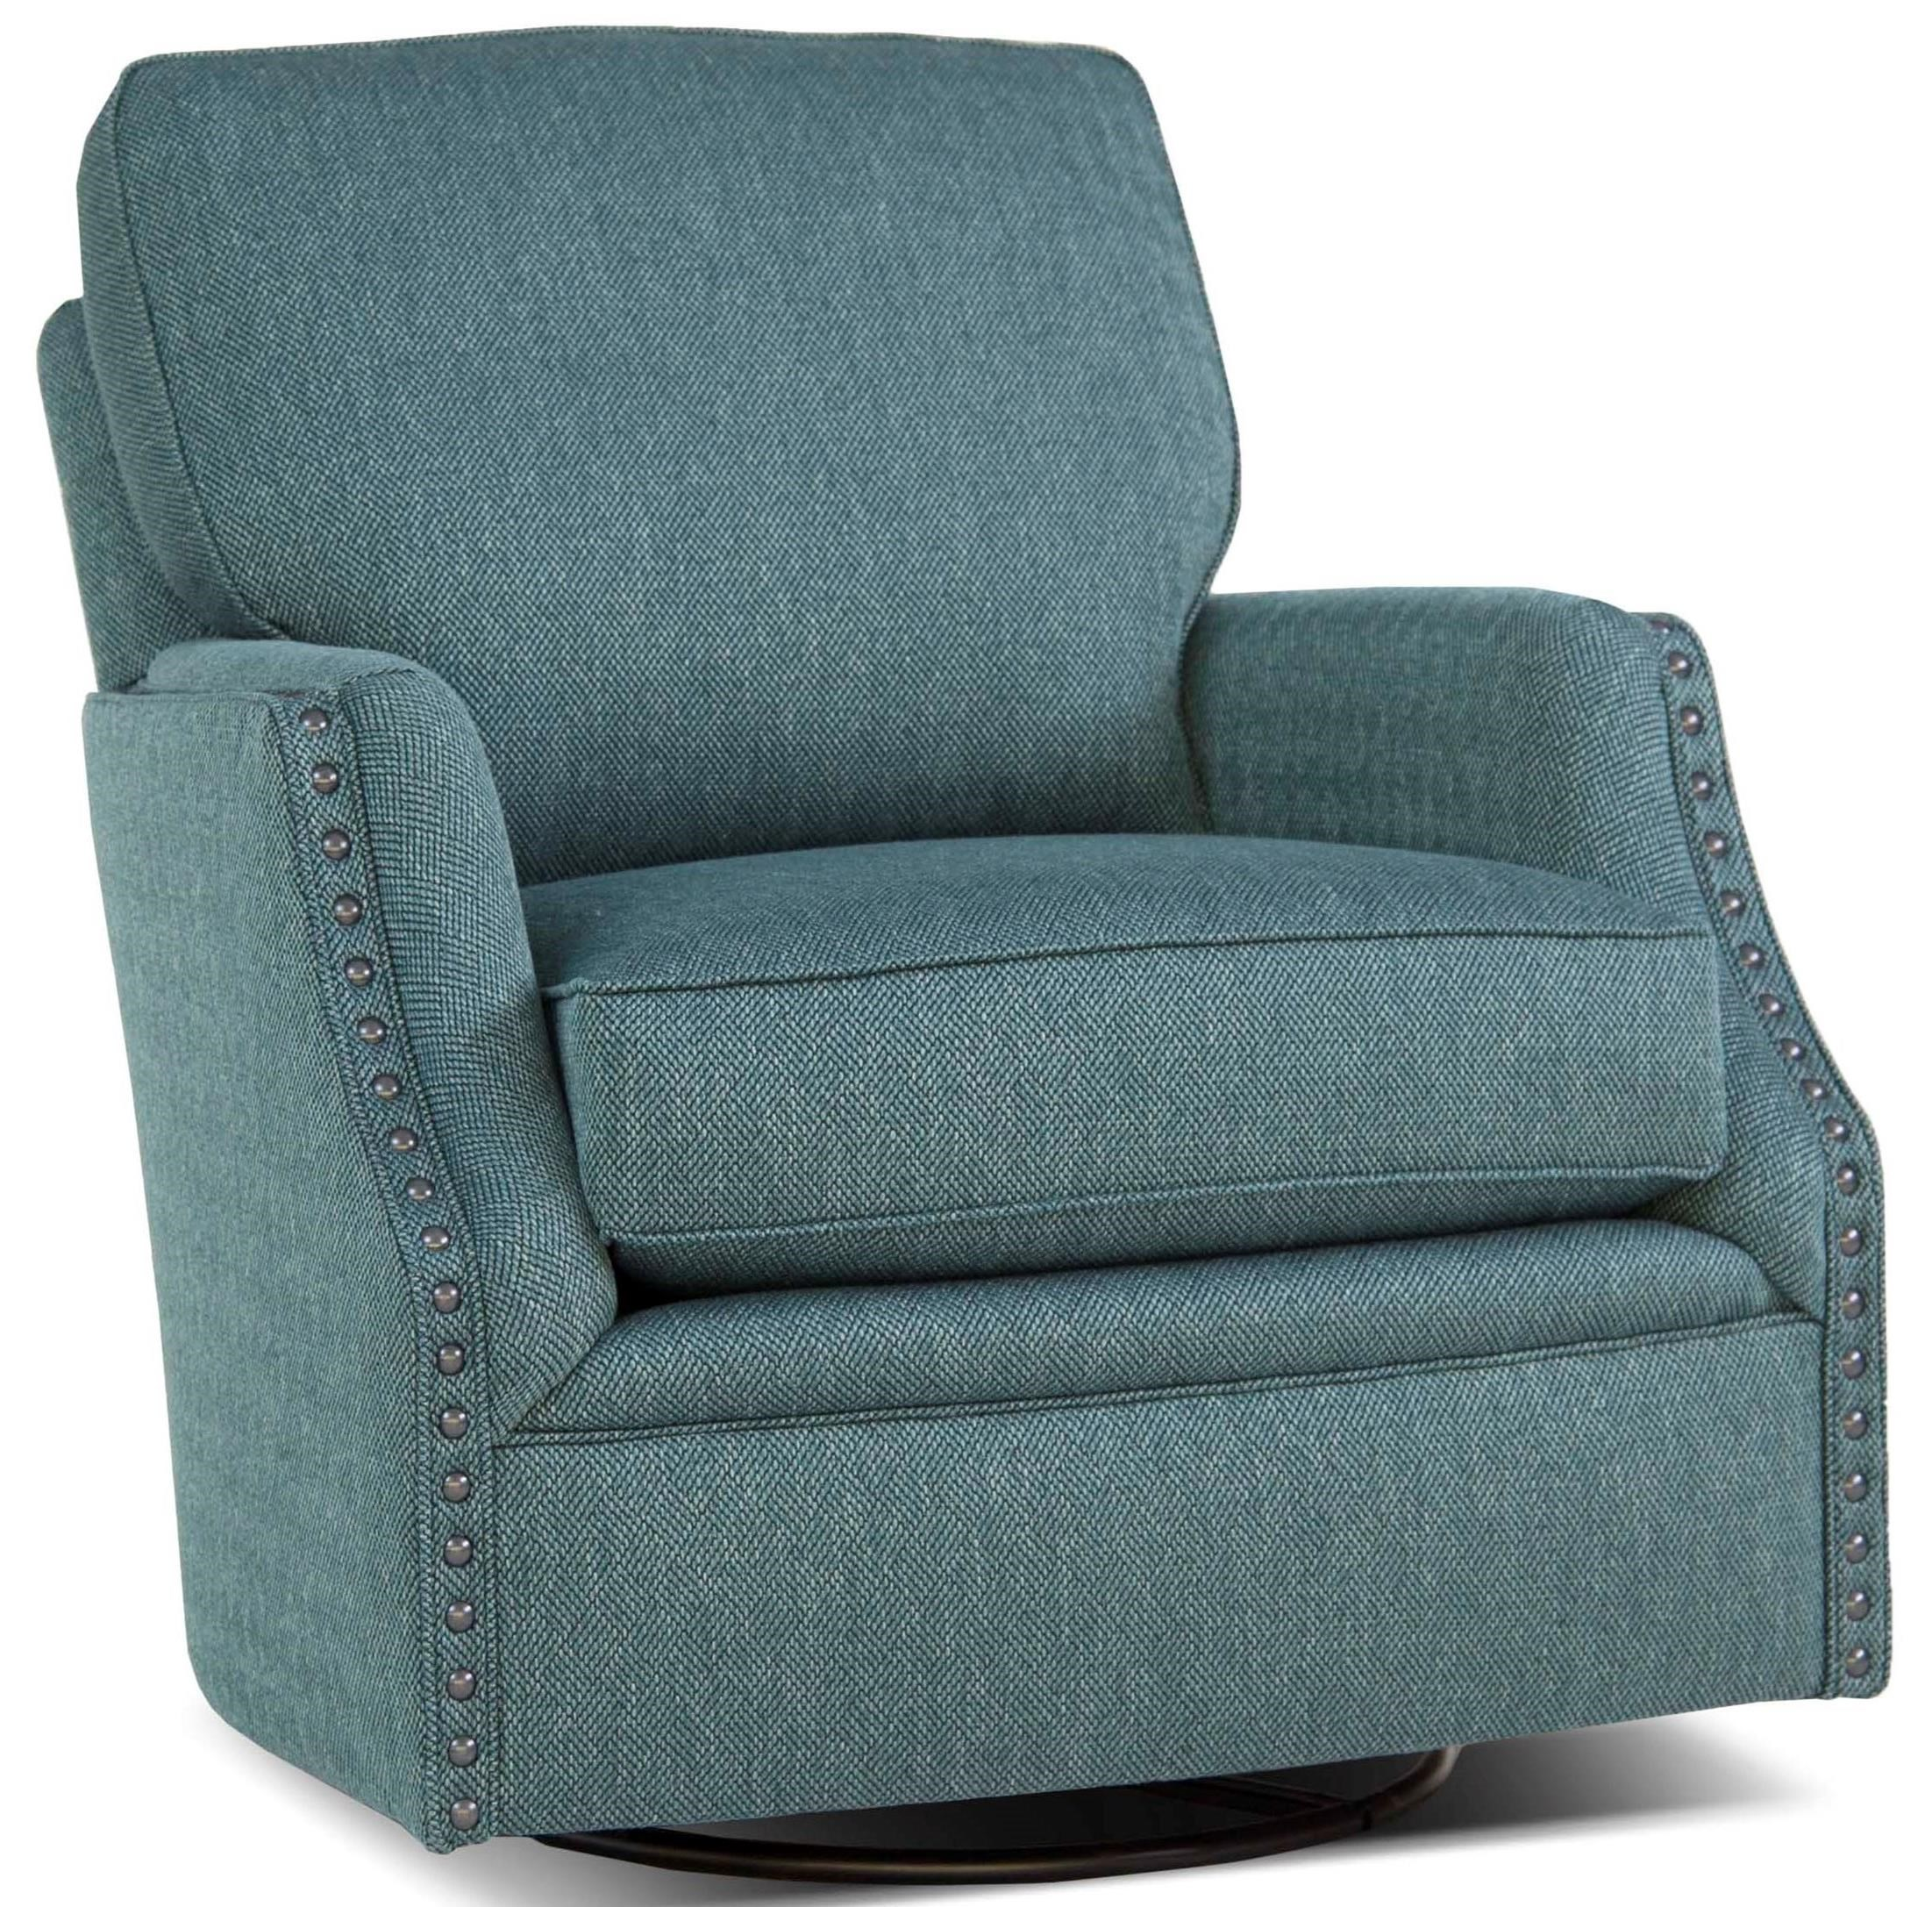 Upholstered Glider Chair Smith Brothers 526 Casual Swivel Glider Chair With